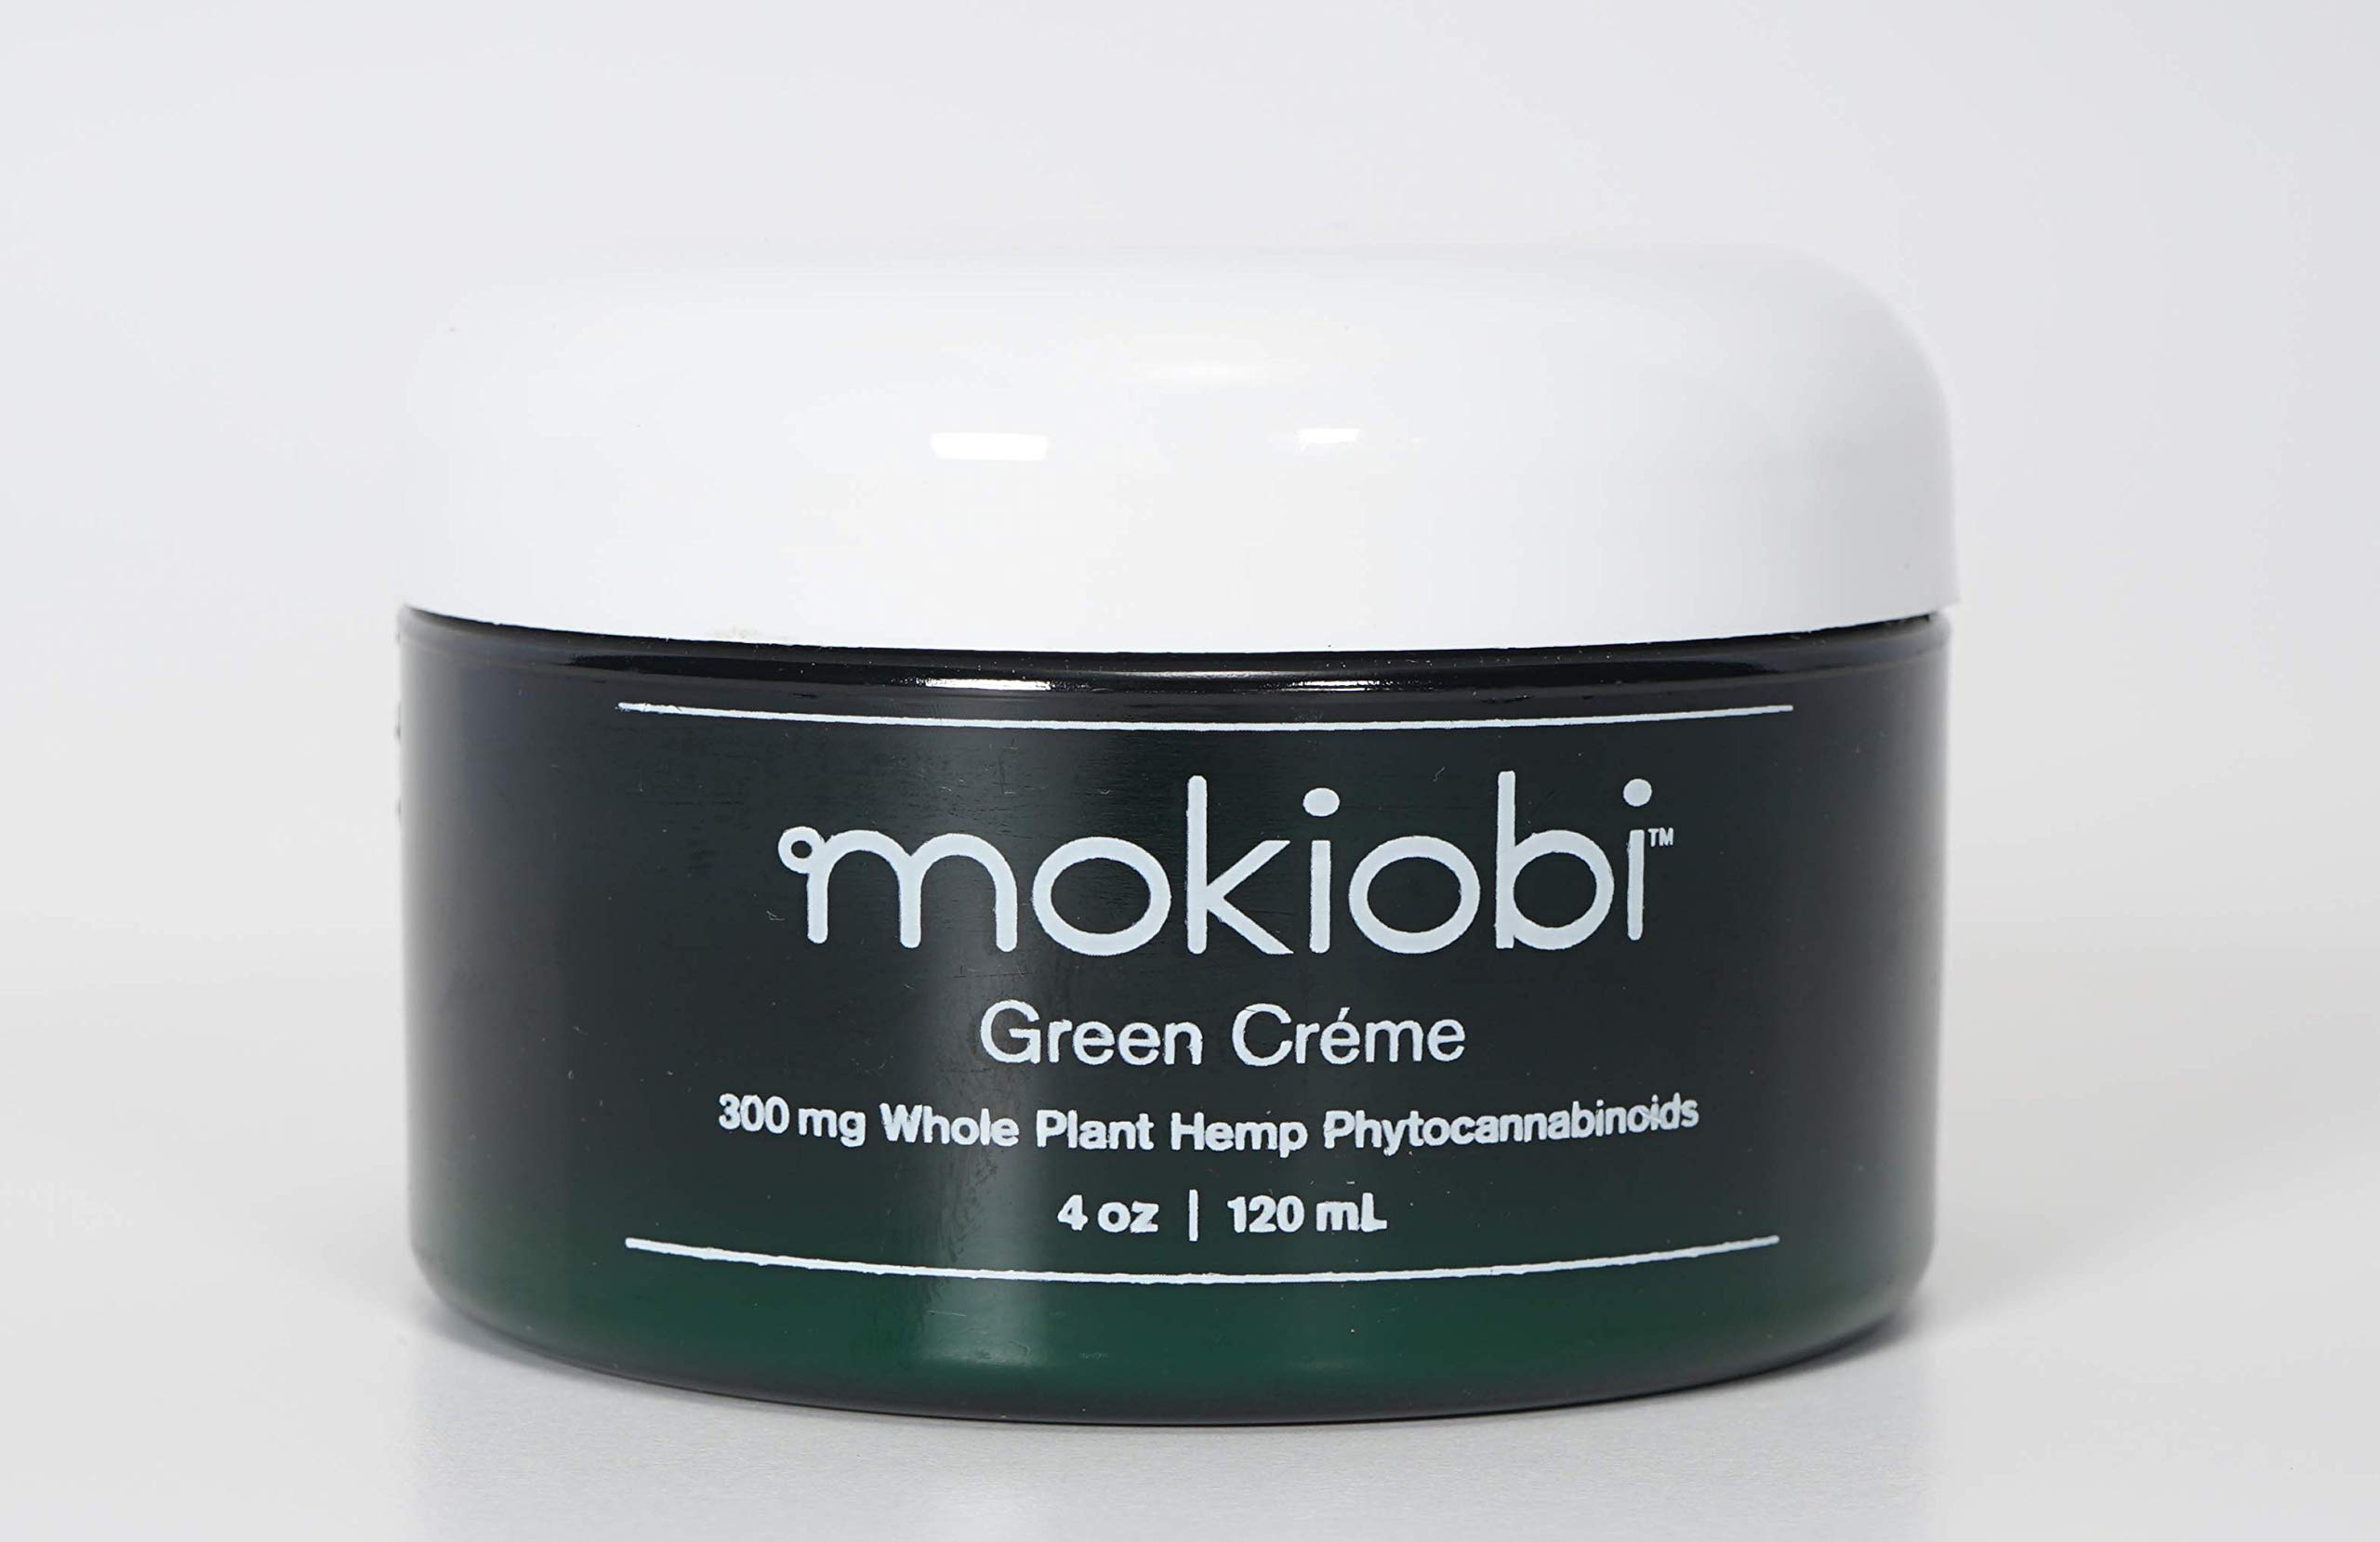 Mokiobi Green Créme - Whole Hemp Plant Infused Muscle & Skin Créme by Mokiobi